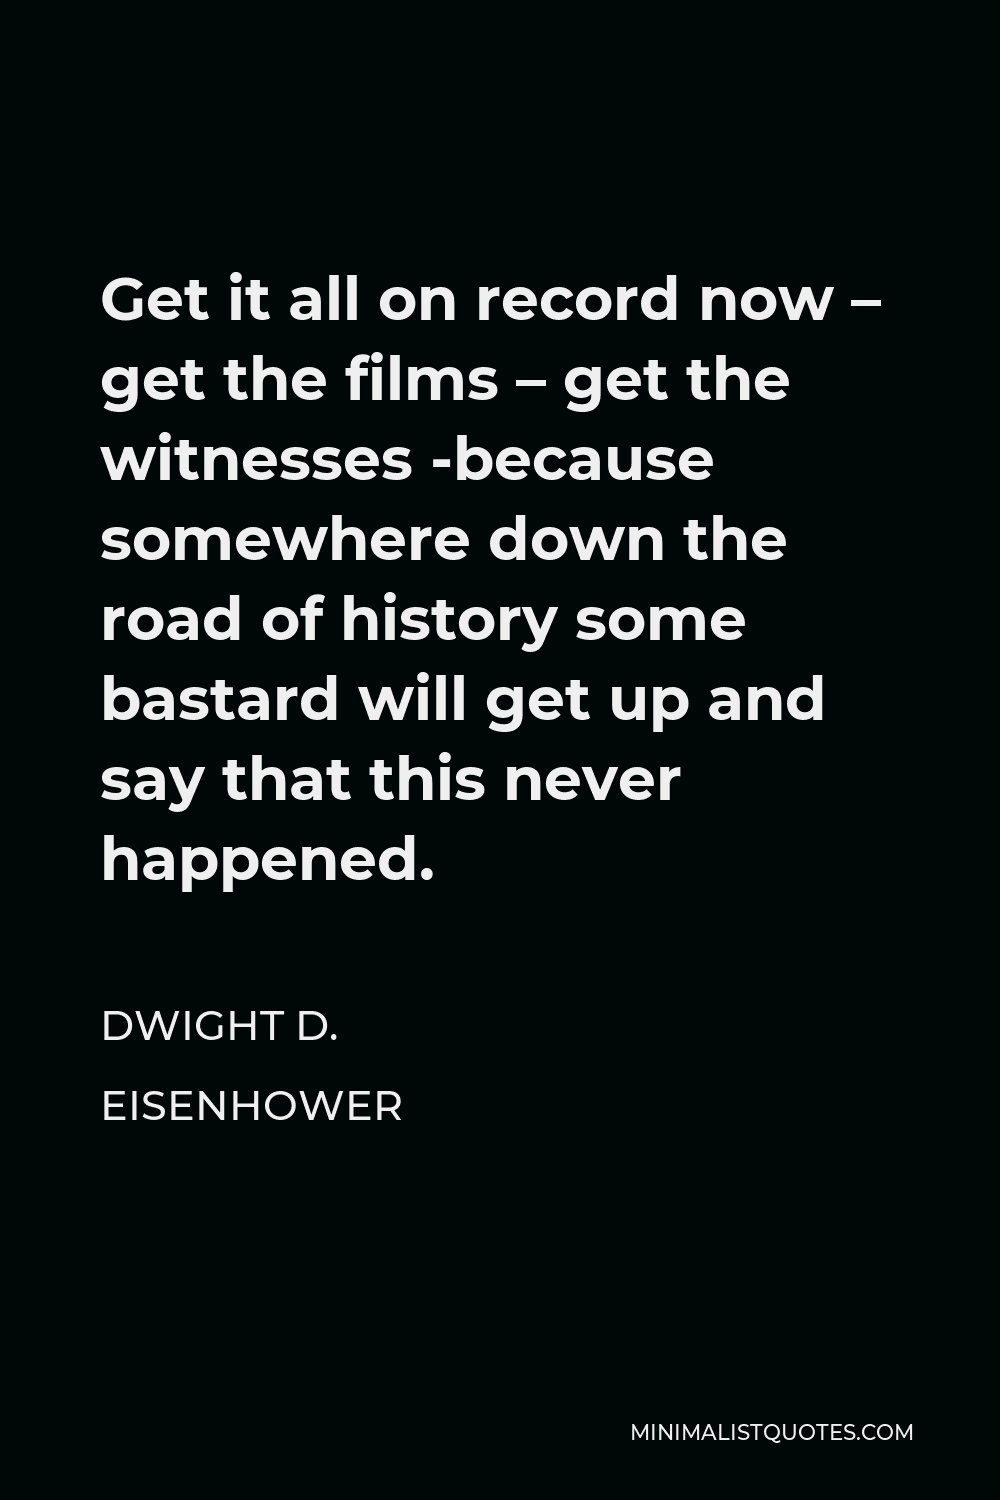 Dwight D. Eisenhower Quote - Get it all on record now – get the films – get the witnesses -because somewhere down the road of history some bastard will get up and say that this never happened.